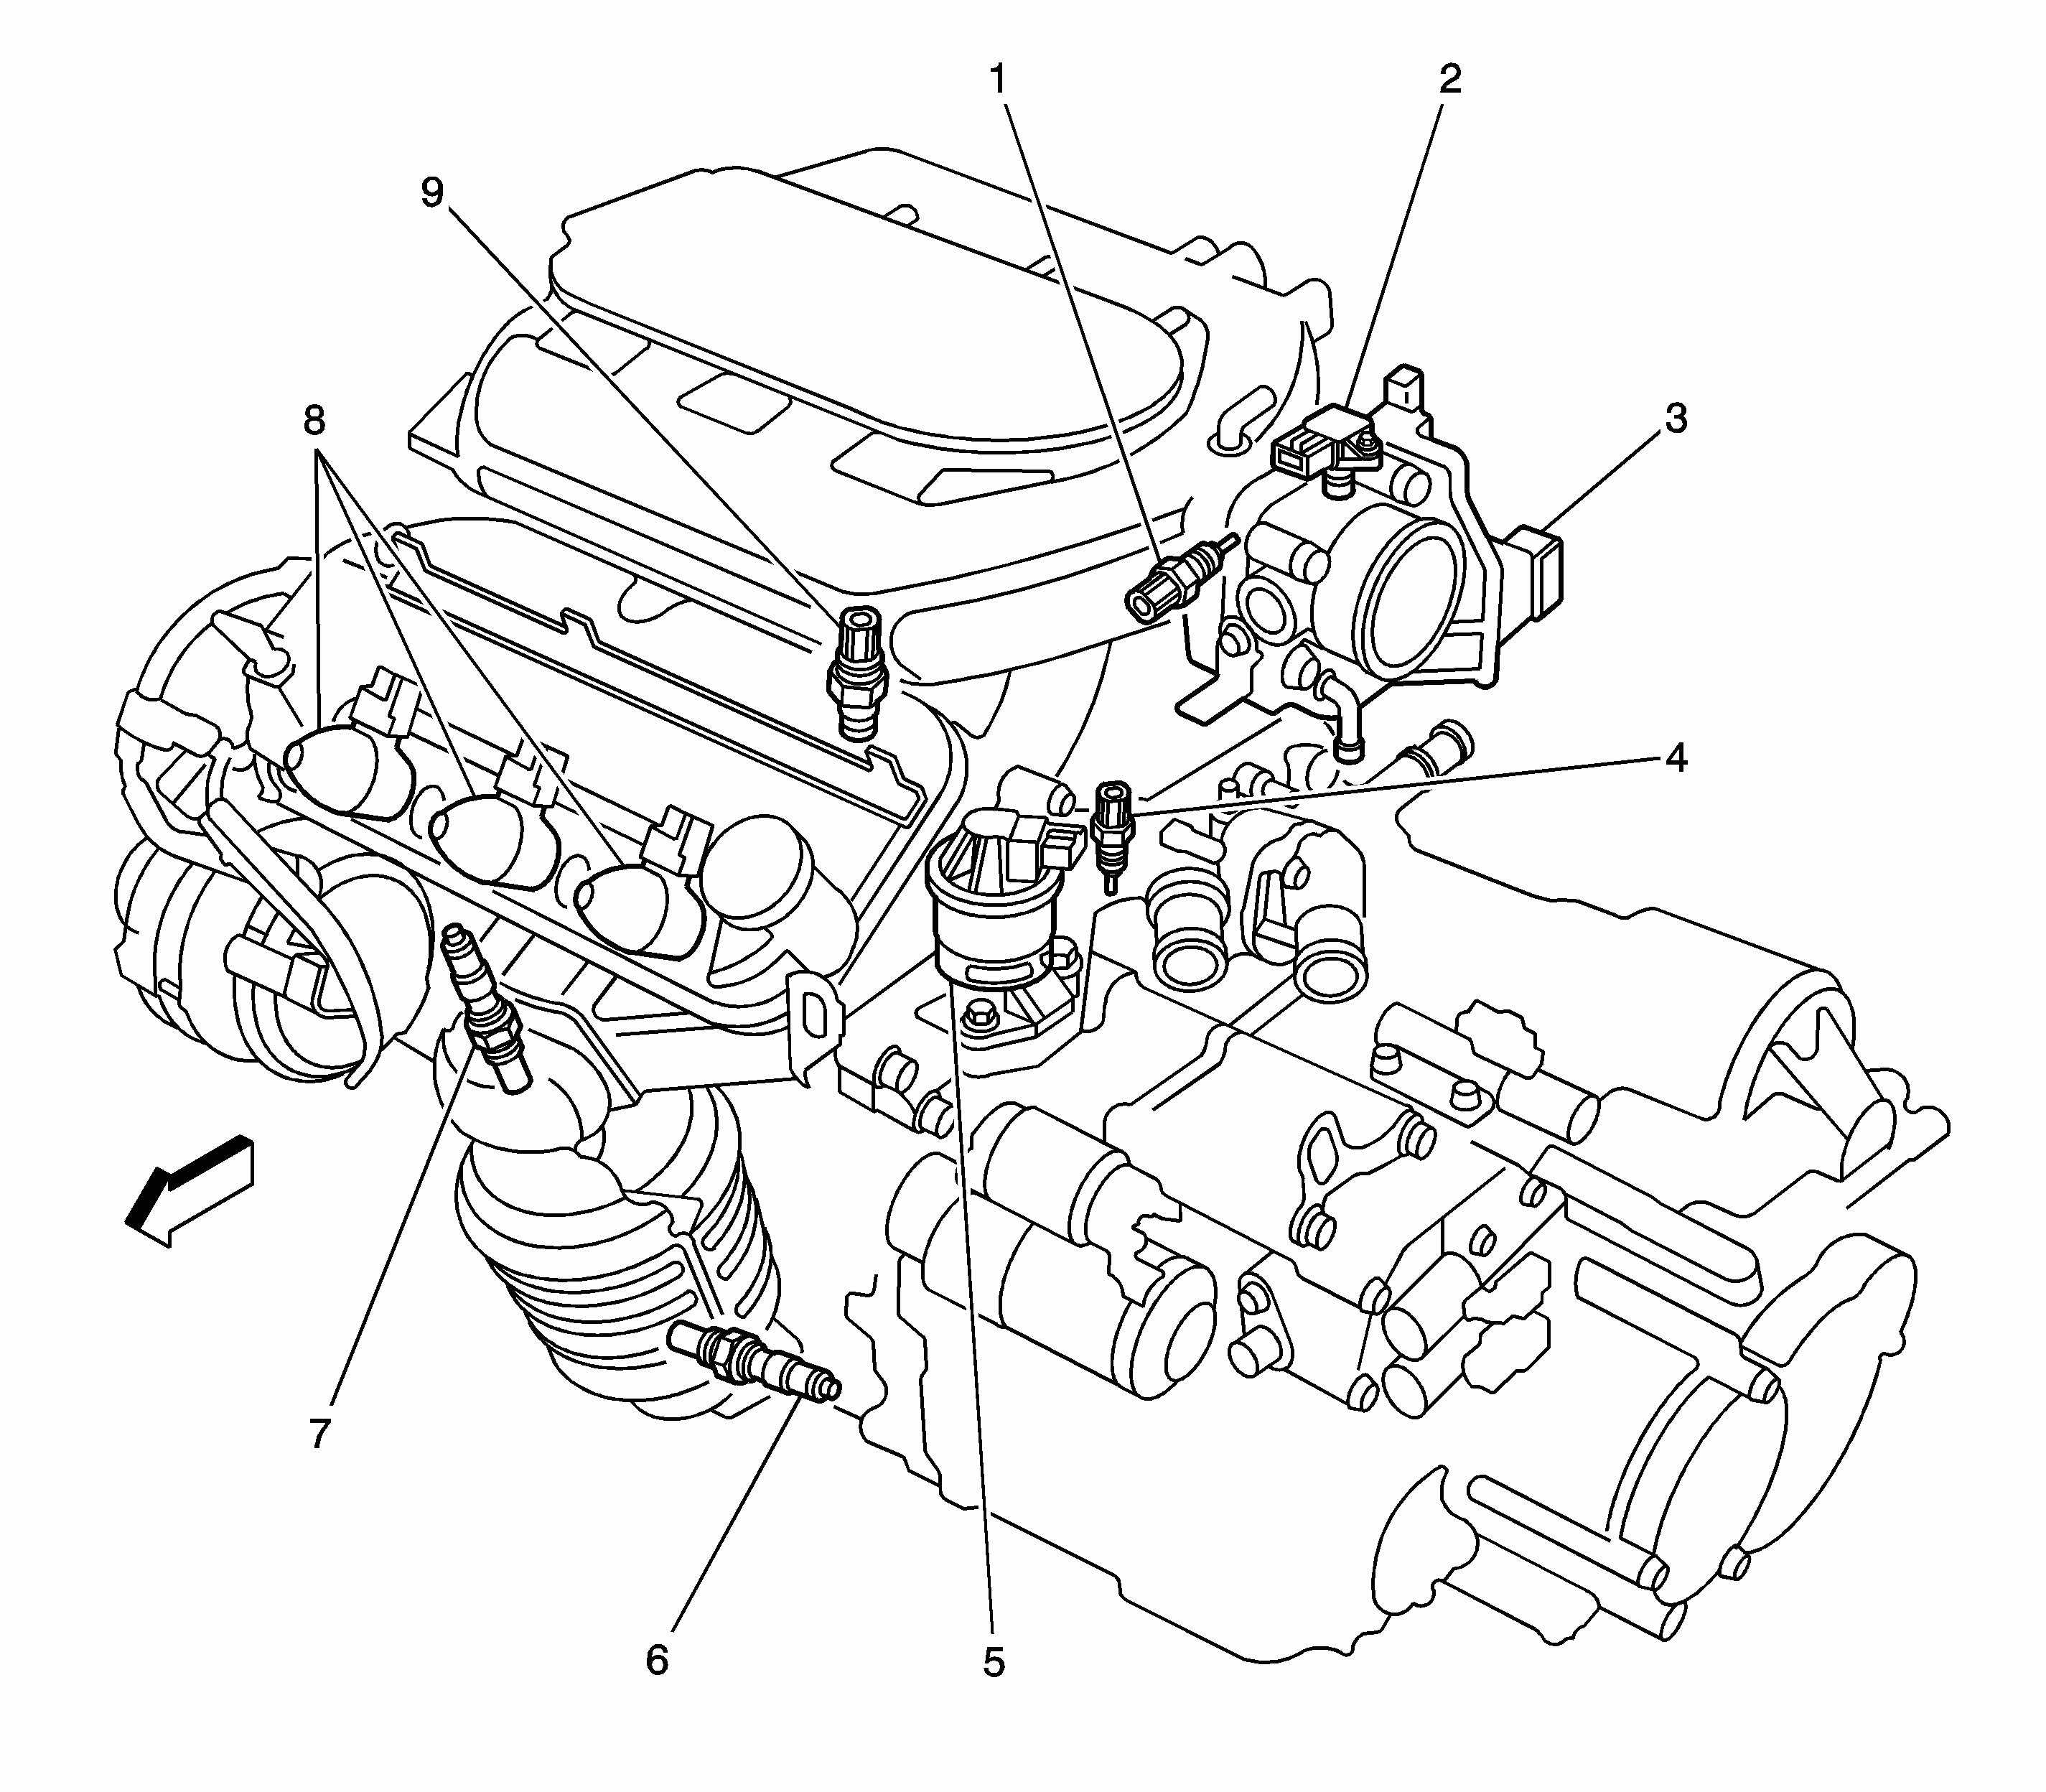 Daewoo Lano Engine Diagram